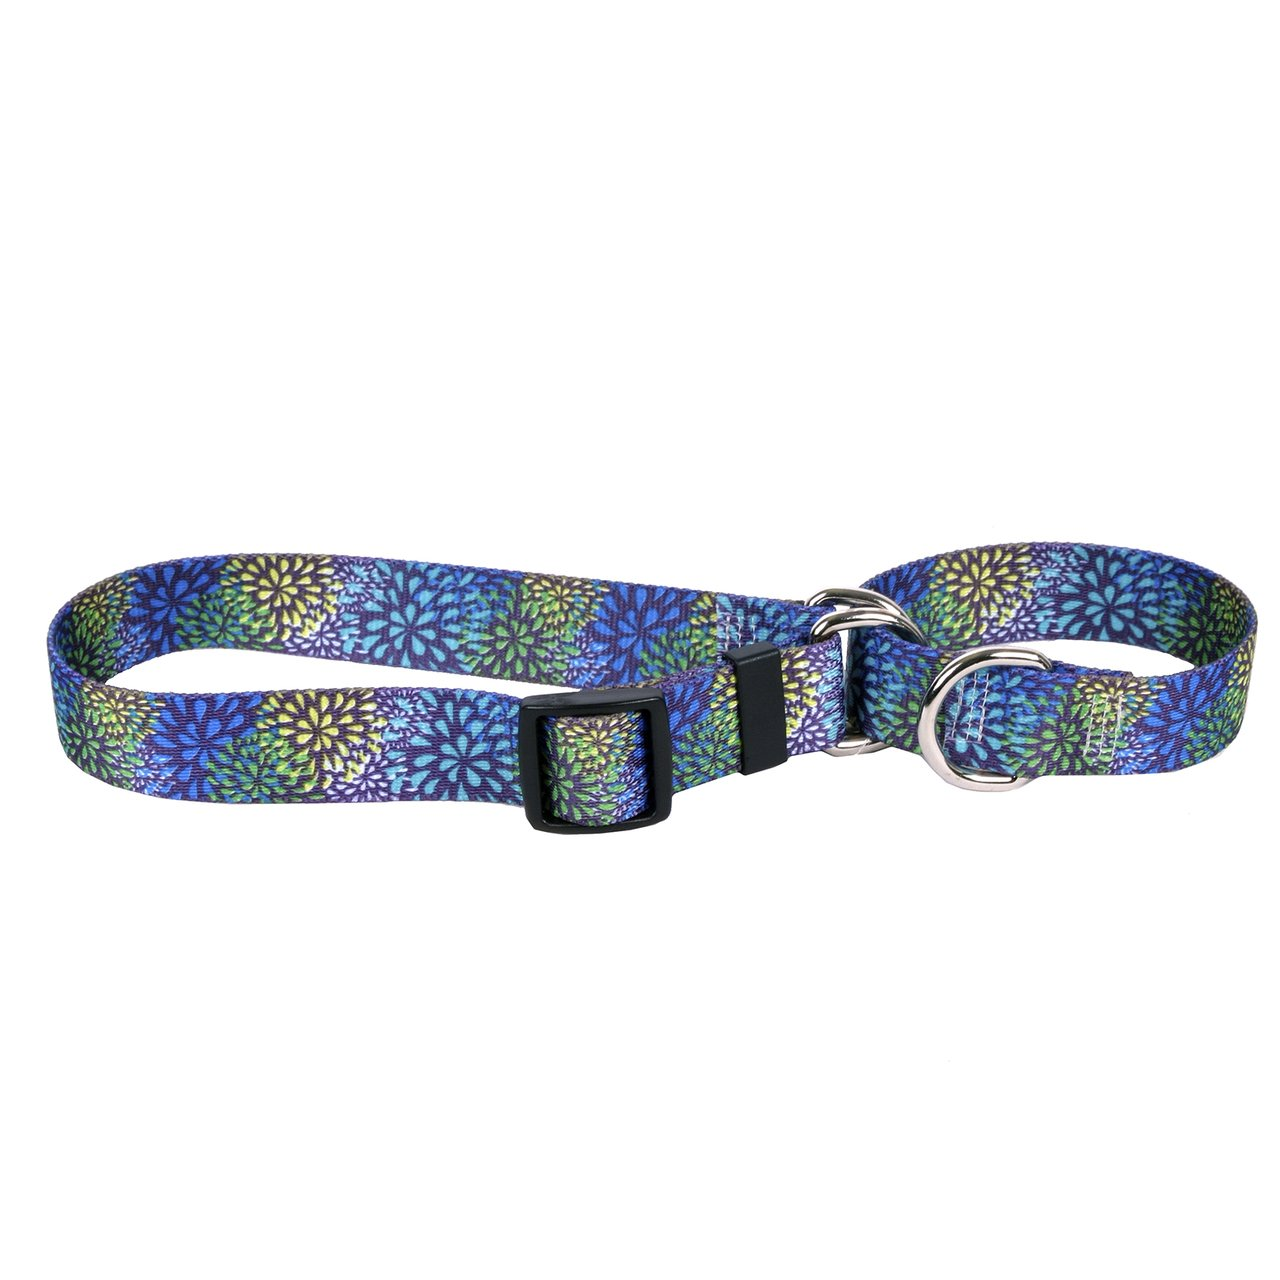 Yellow Dog Design Flower Works Blue Martingale Dog Collar 1'' Wide and Fits Neck 18 to 26'', Large